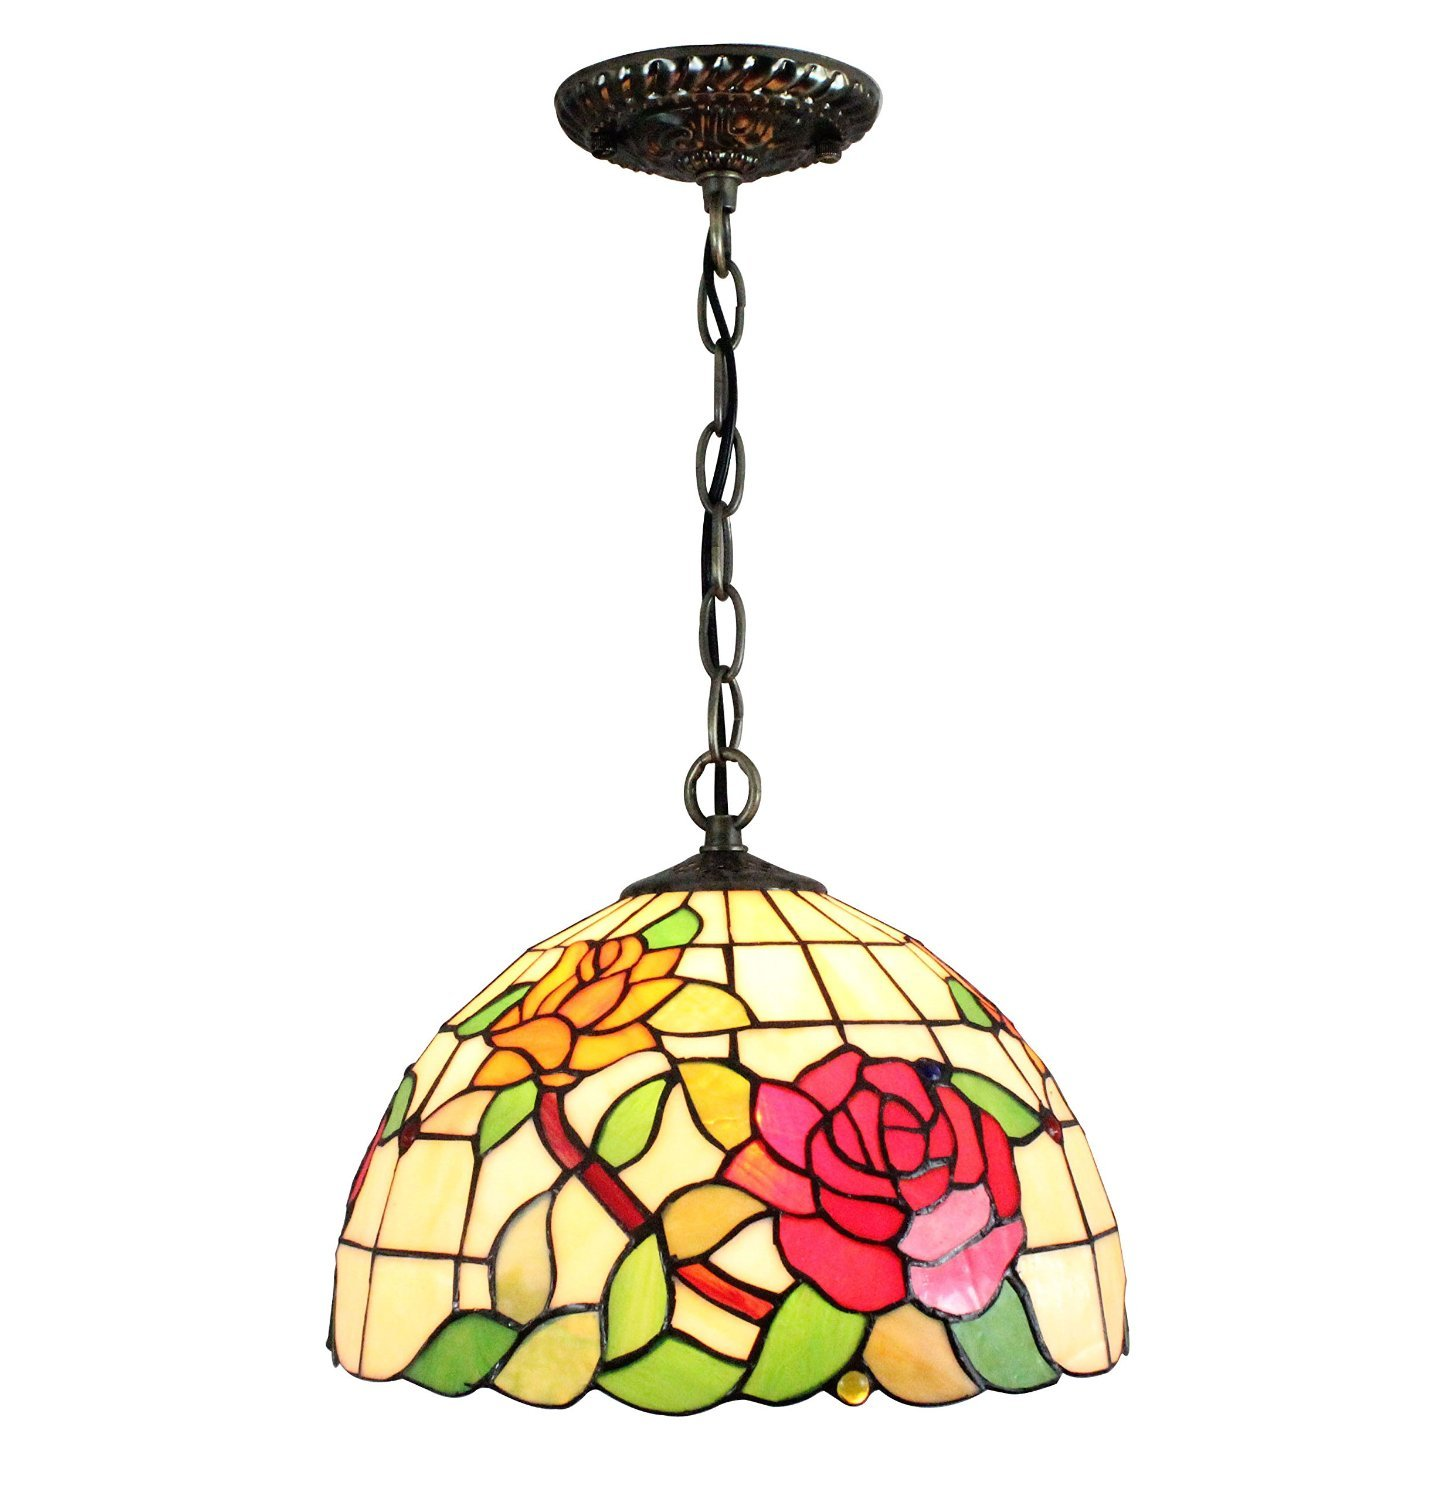 Carl Artbay DDM-D3 Tiffany Style Rose Pattern Stained Lamp Shade Hanging Pendant, 12 Inch, 1-Lights, Multi-Colour